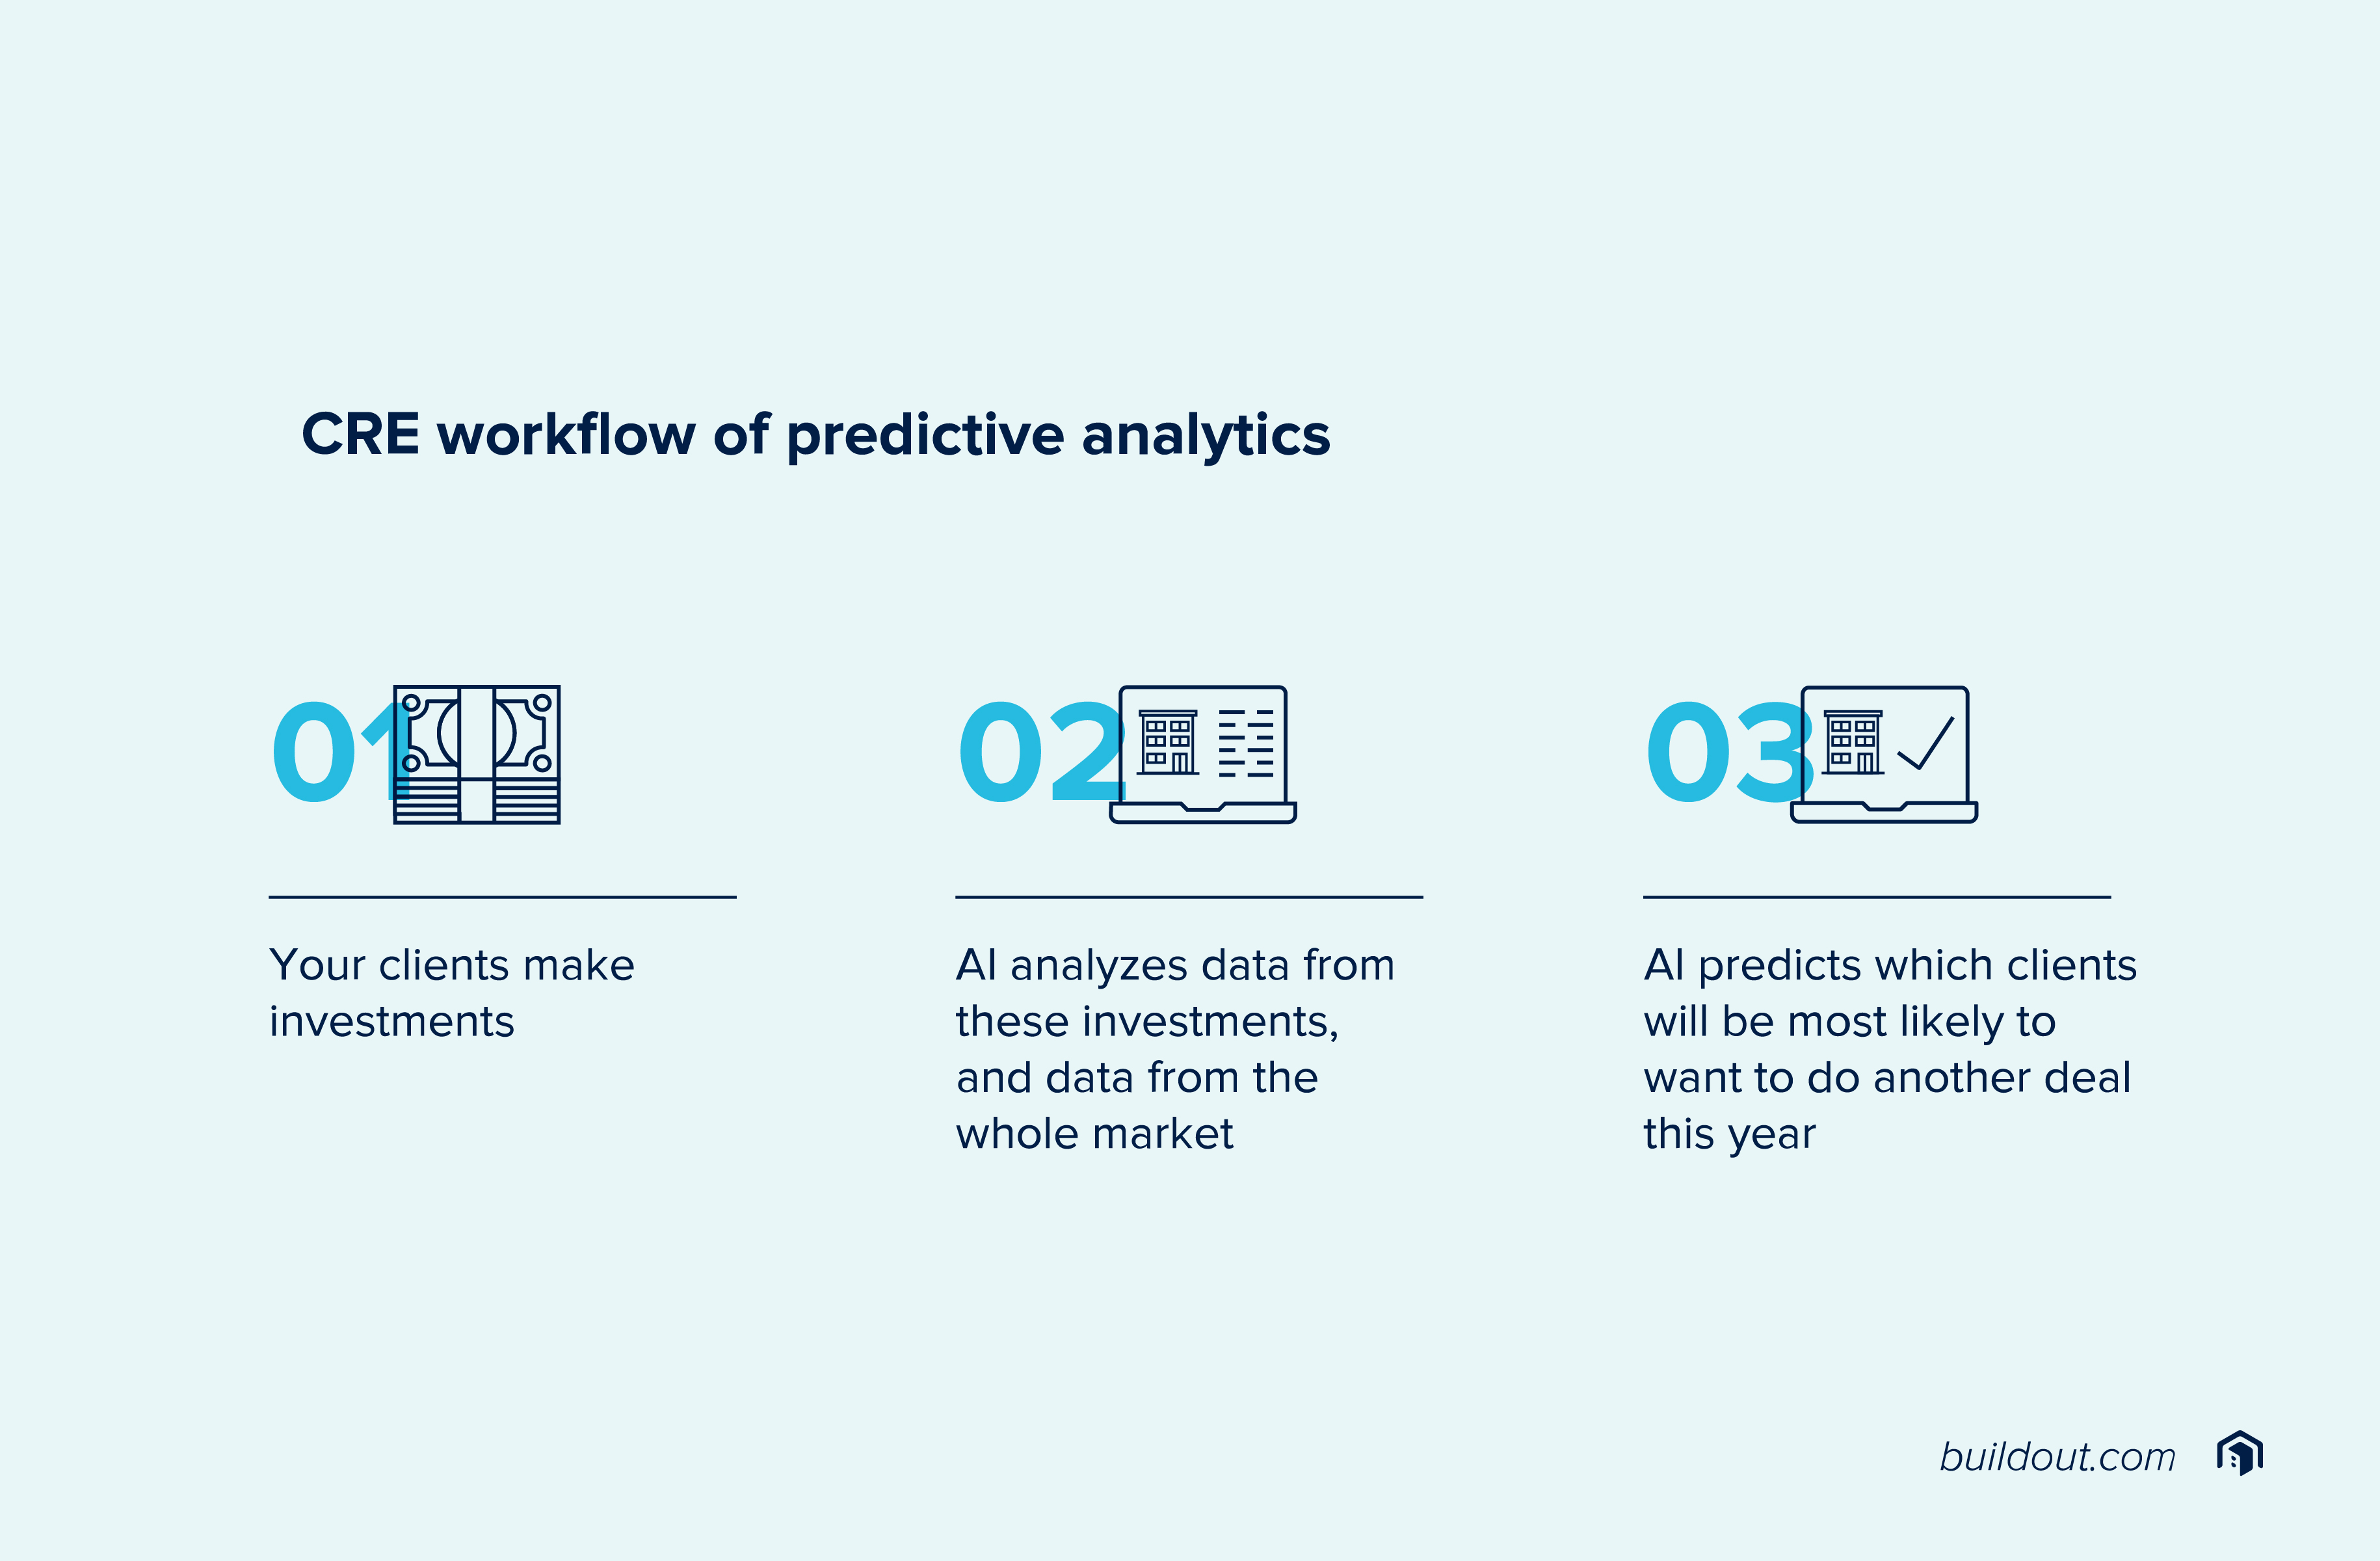 CRE workflow of predictive analytics